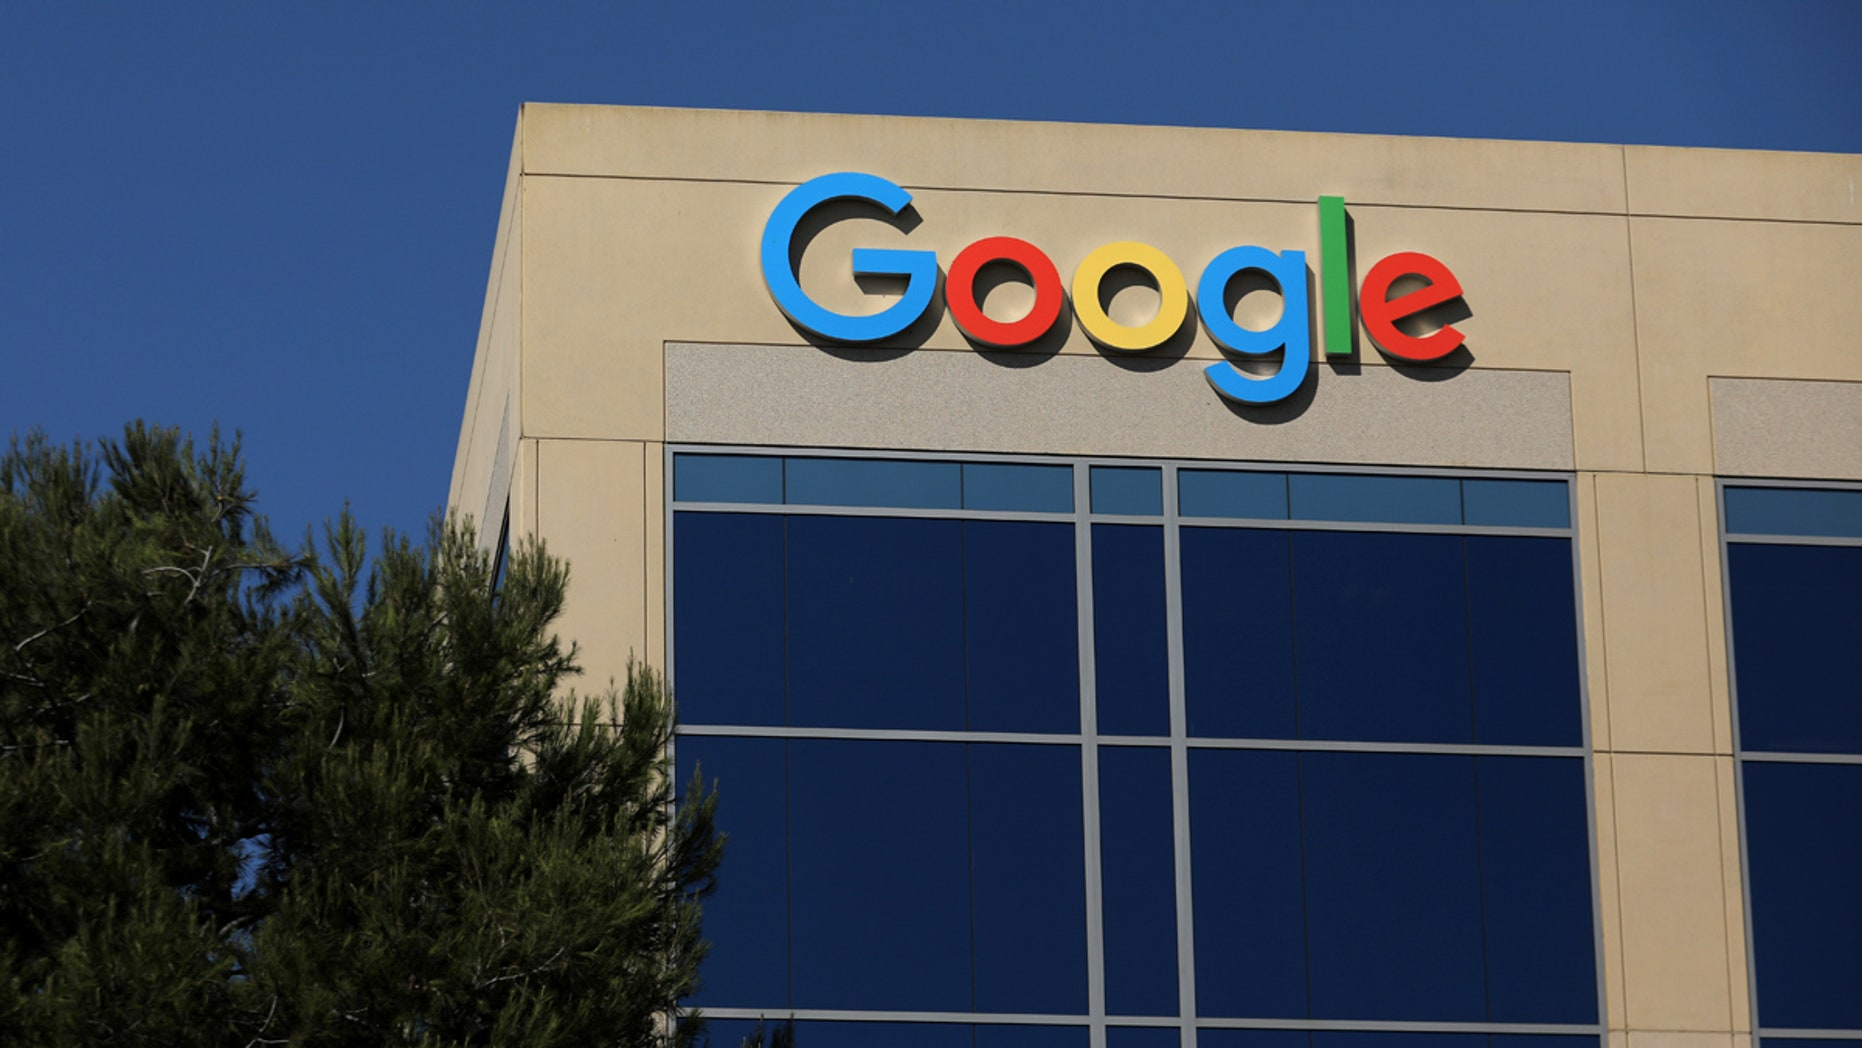 Google's logo is seen on a building in Irvine, California.